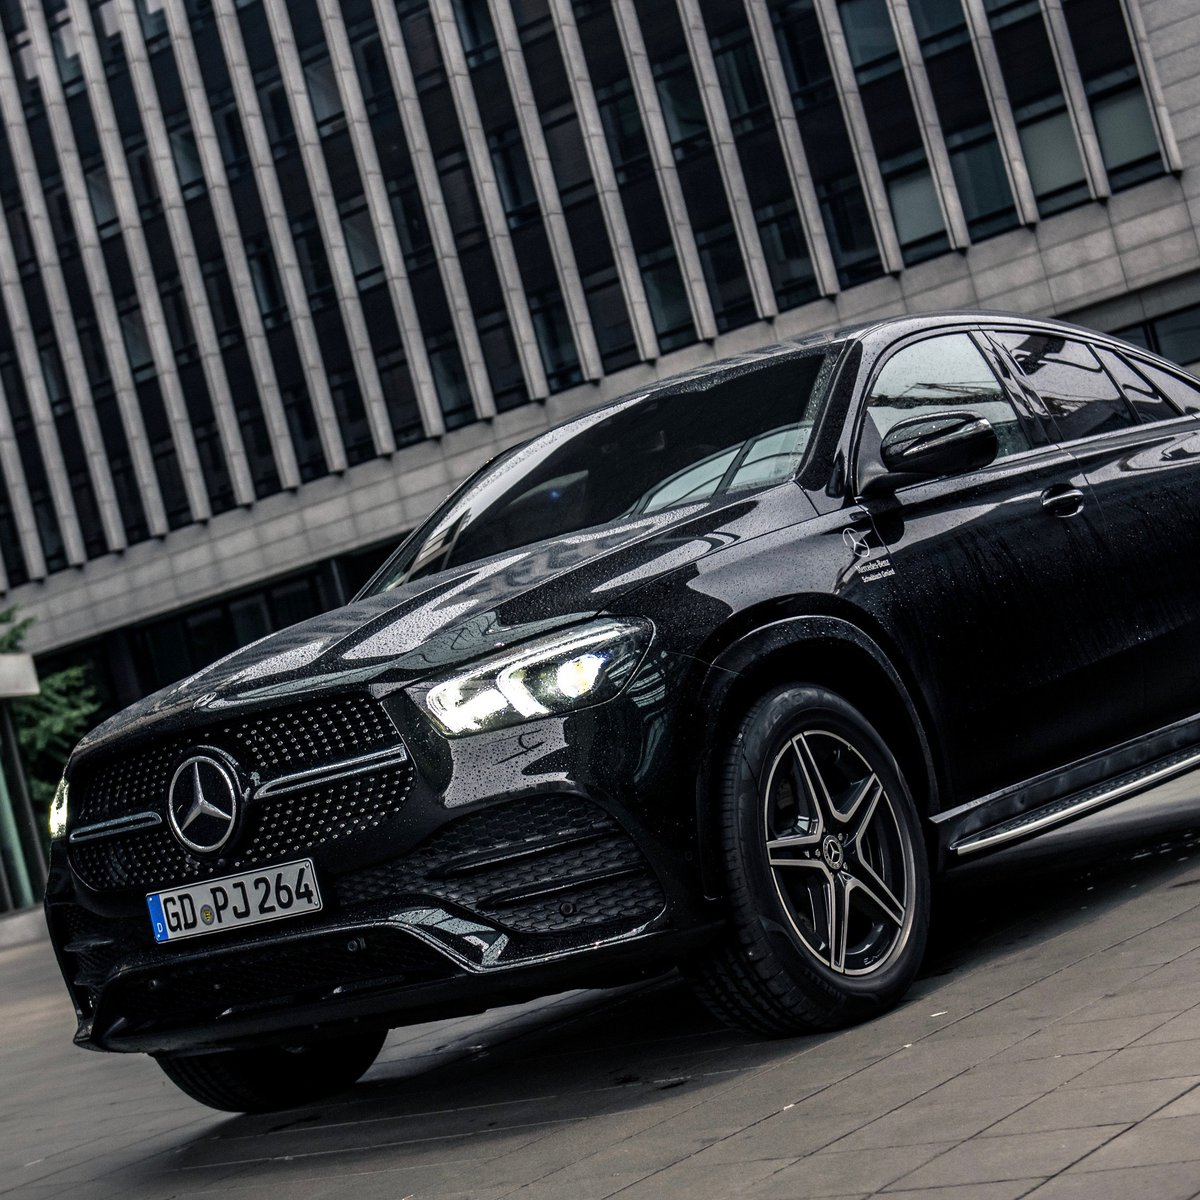 The #GLE #Coupe blends the sportiness and elegance of a coupé with the engineering of the premium-SUV model series from Mercedes-Benz.  https://t.co/rv40RHA3Wj  #MBSocialCar by @prismview (IG) via Mercedes-Benz Stuttgart https://t.co/K3fnIH174P